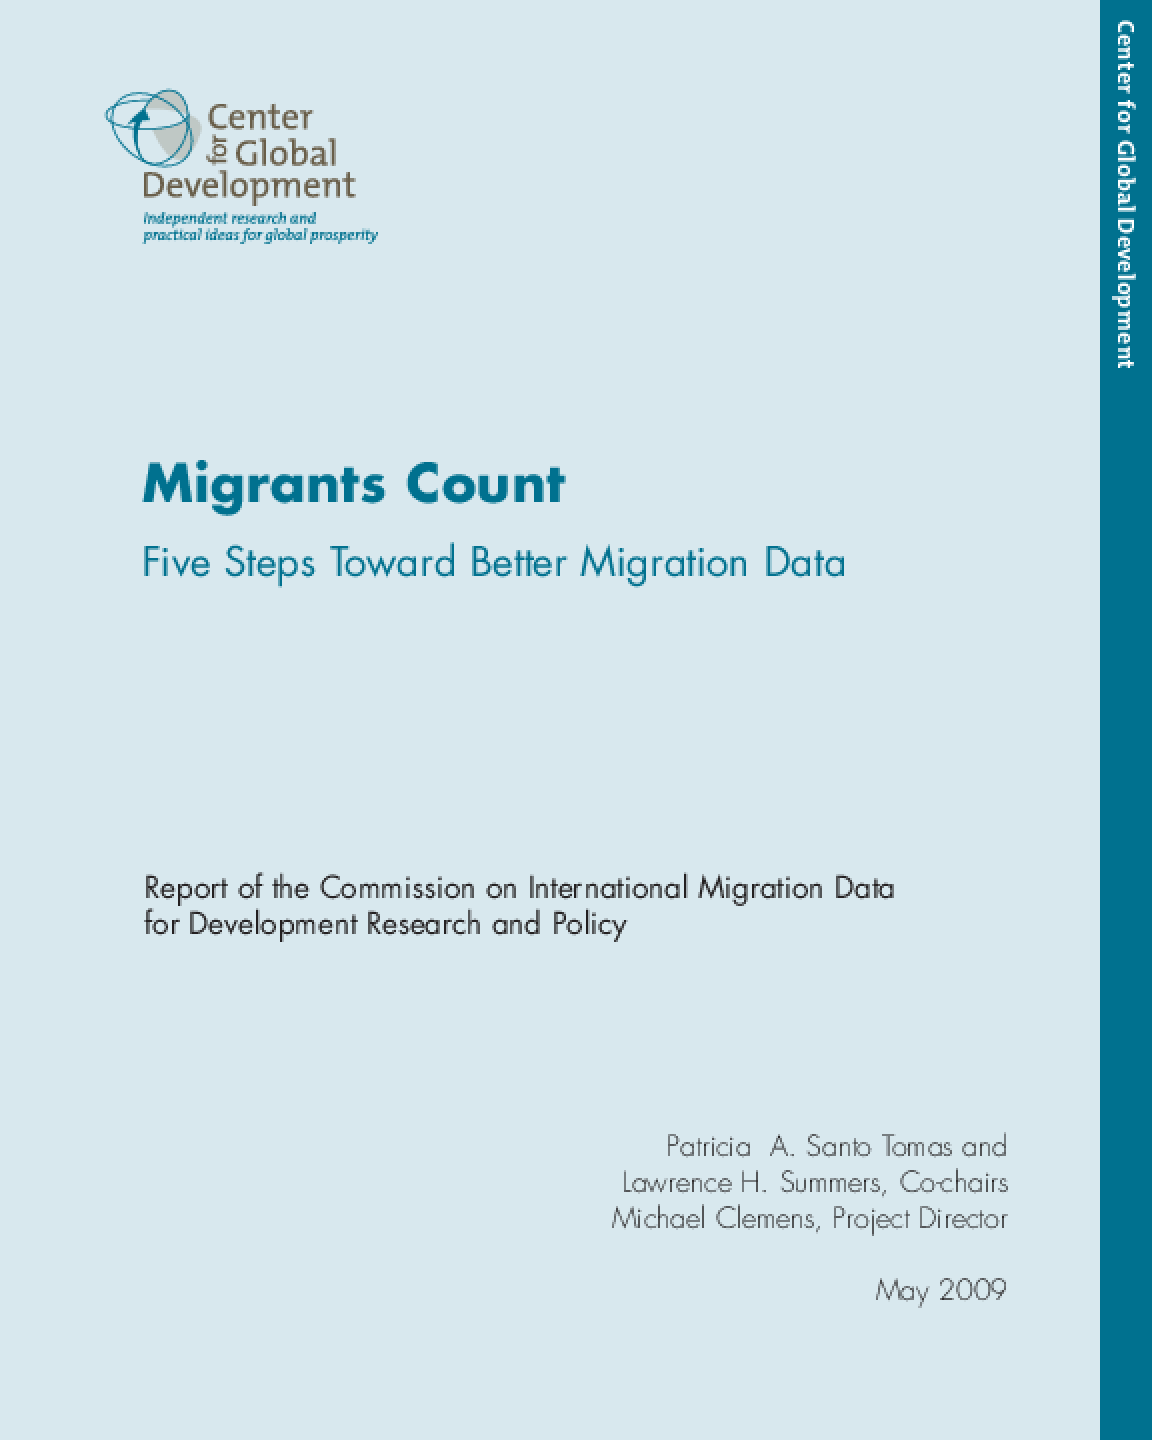 Migrants Count: Five Steps Toward Better Migration Data